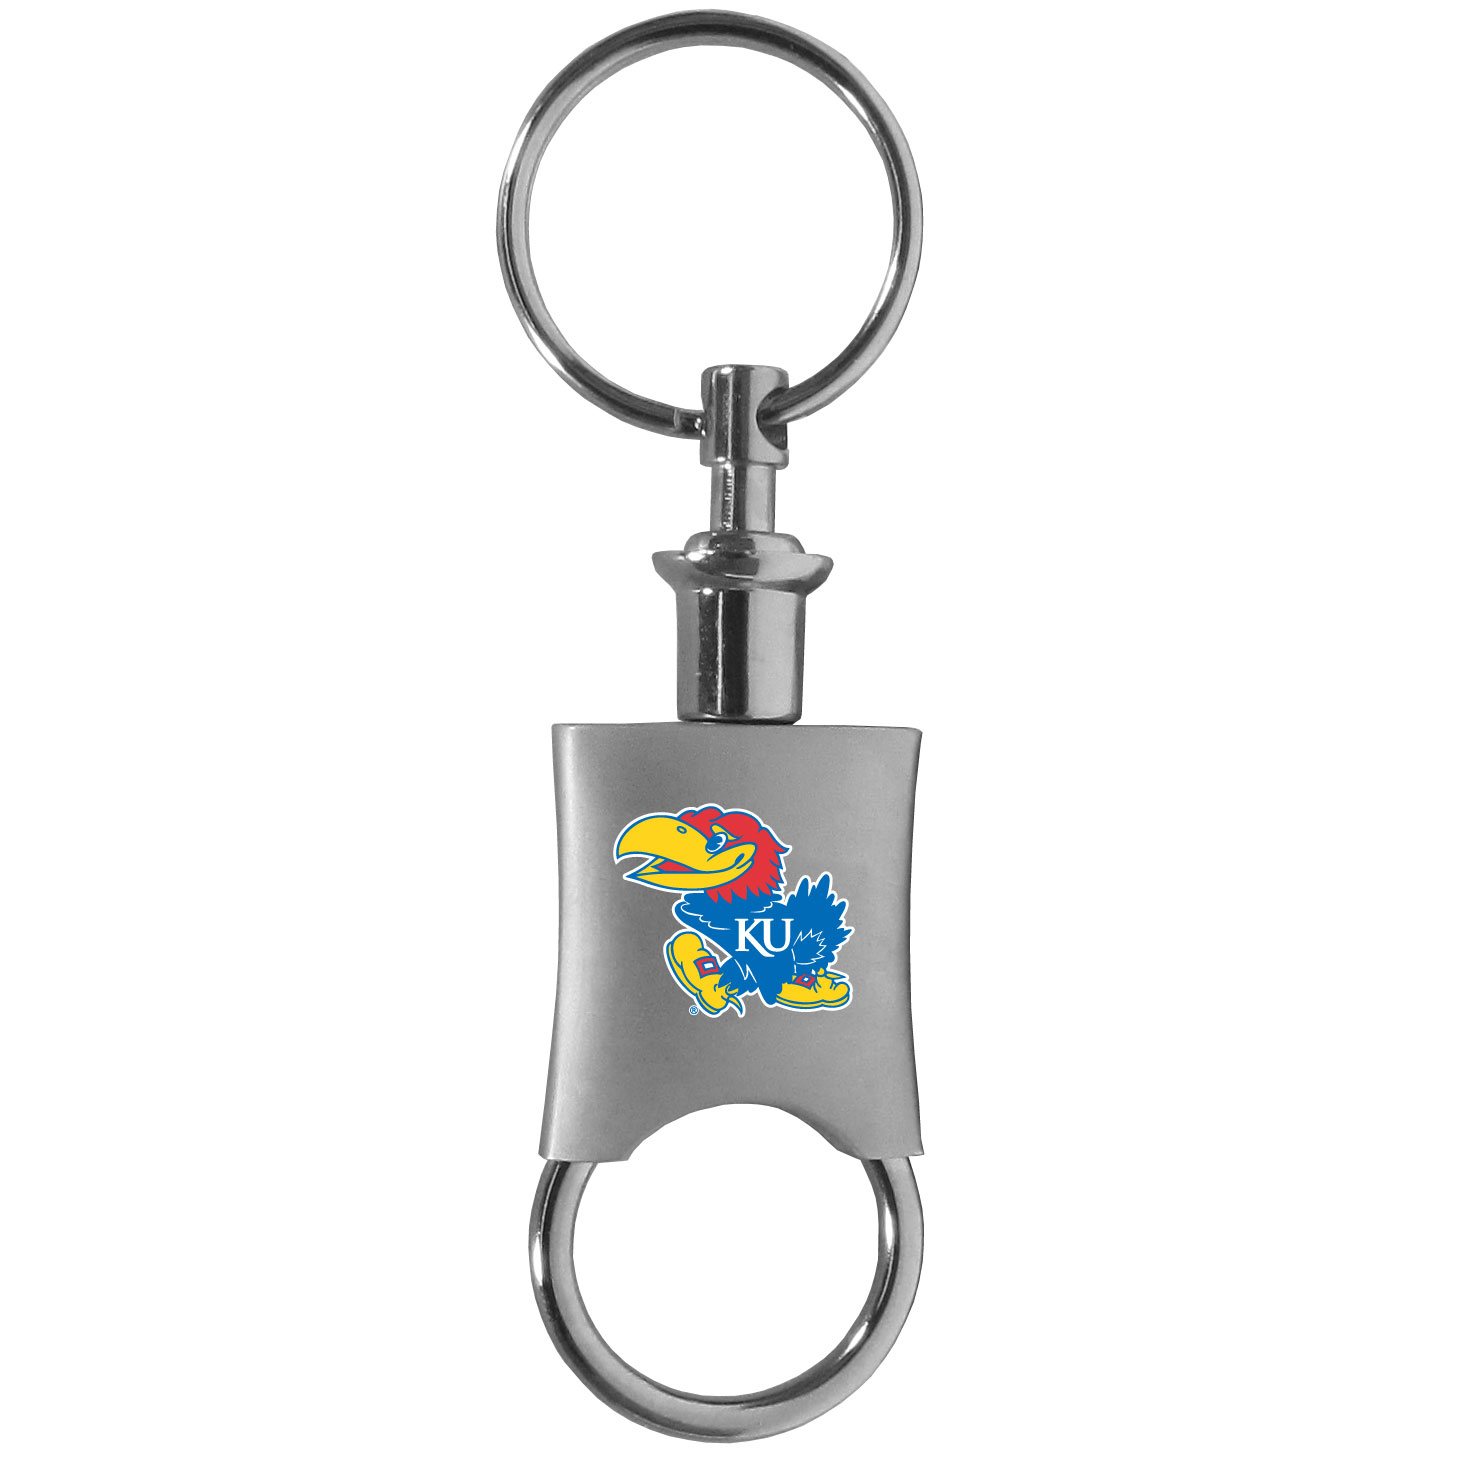 Kansas Jayhawks Valet Key Chain - This high-quality key chain is both fashionable and functional. The key chain features to key rings and one of them detaches easily for valet use so you do not have to risk giving out all of your keys. The beautiful brushed metal finish features the Kansas Jayhawks logo expertly printed on front.